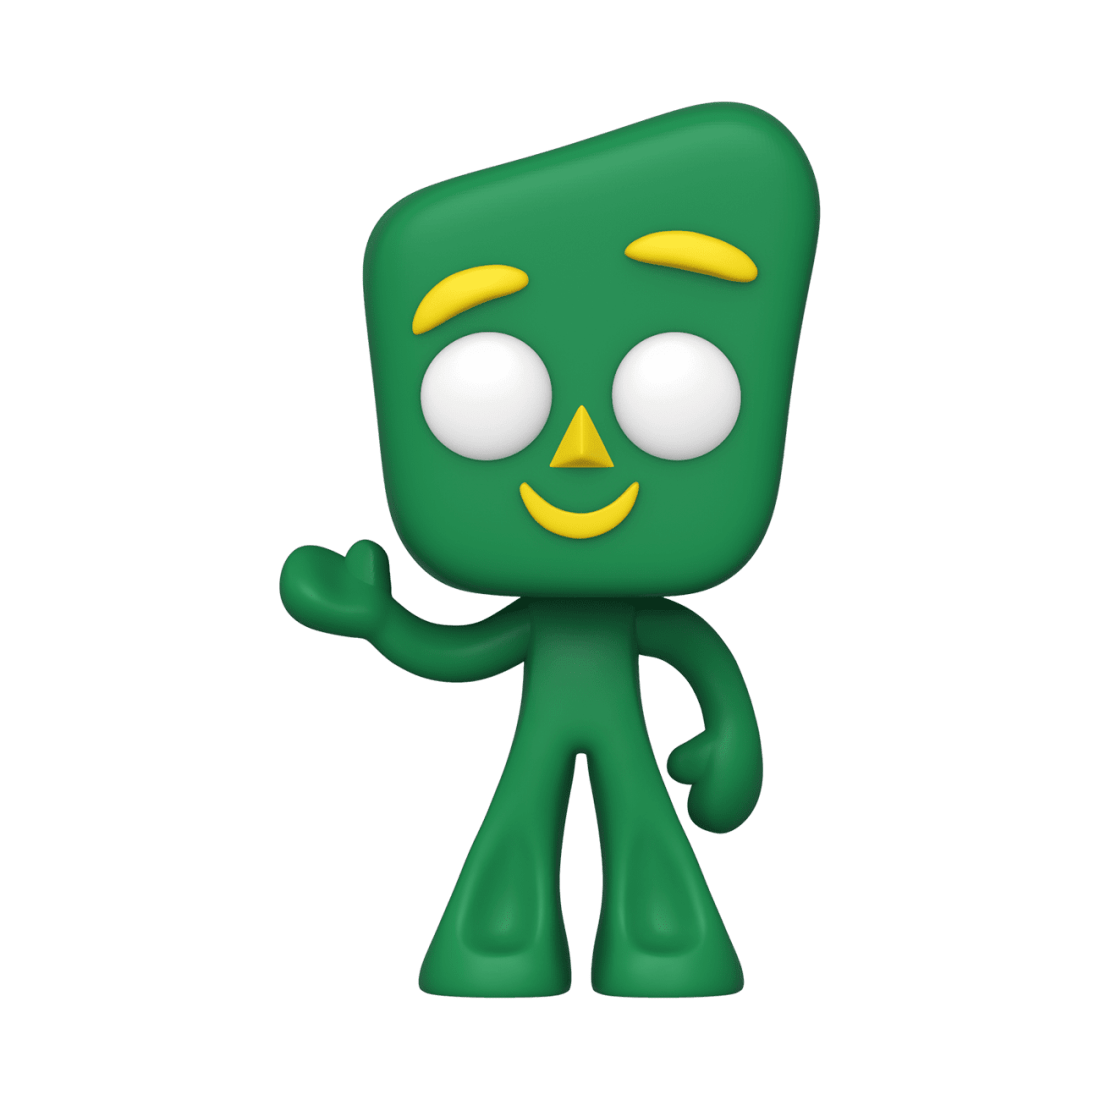 46581_Television_Gumby_POP_GLAM-WEB-bd2a2a661e930f6306f288a052b8f93a.png